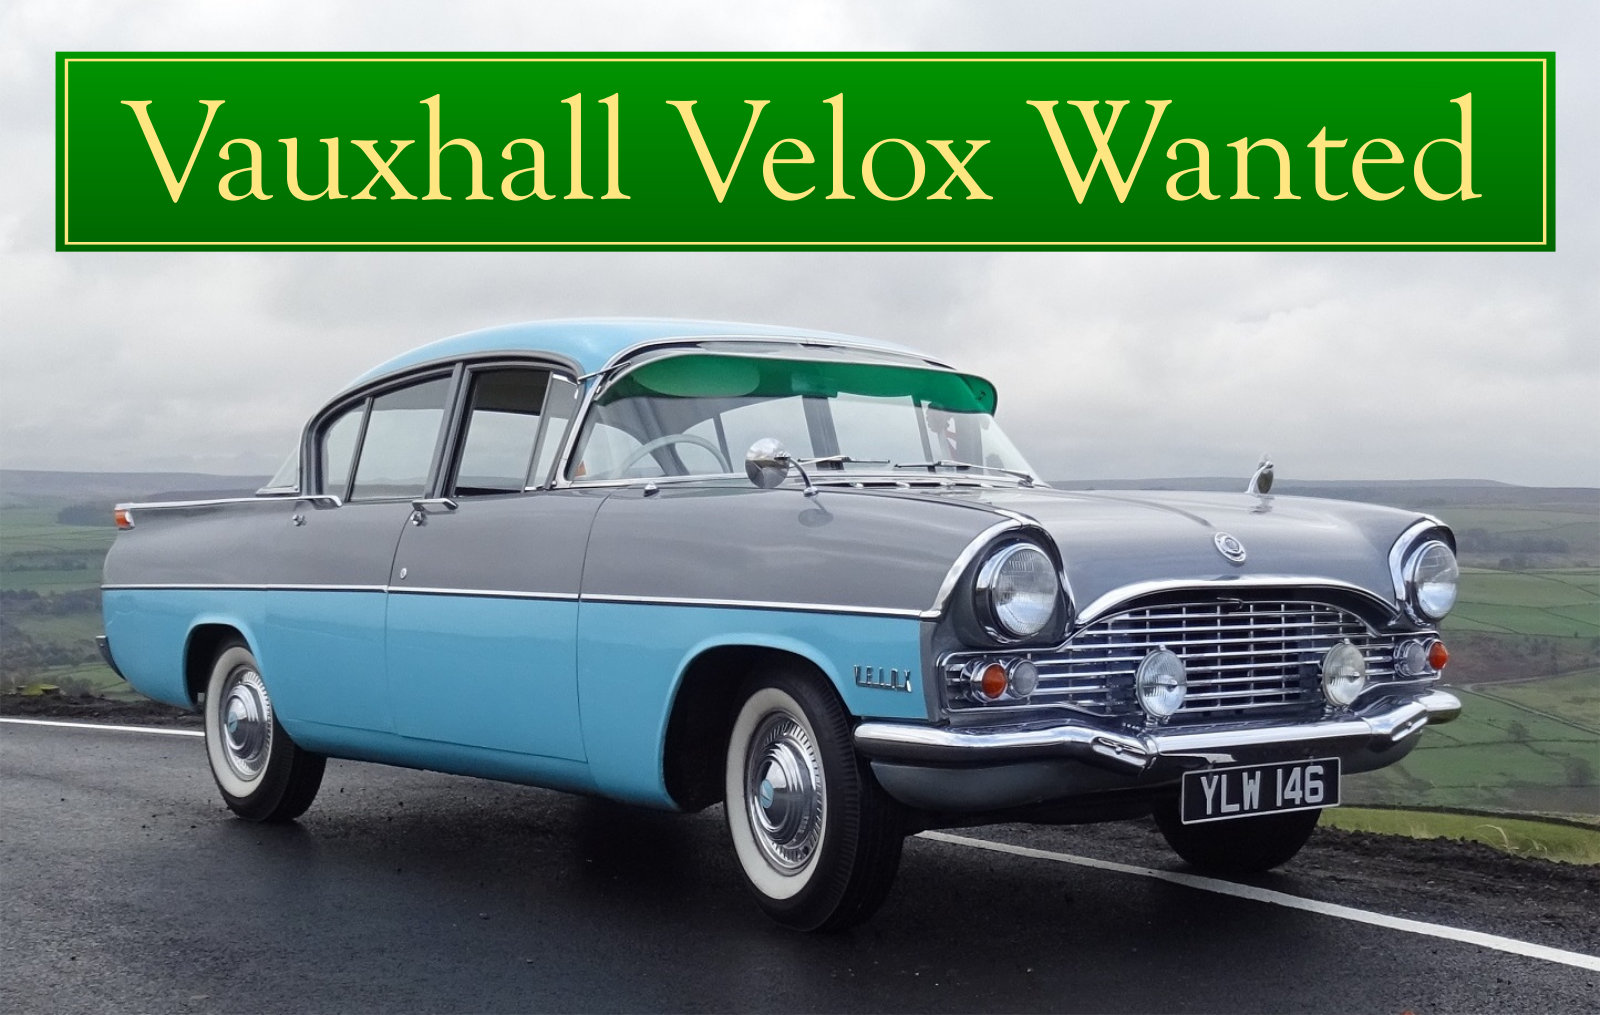 FORD ZODIAC MK1 WANTED, CLASSIC CARS WANTED, INSTANT PAYMENT Wanted (picture 6 of 6)